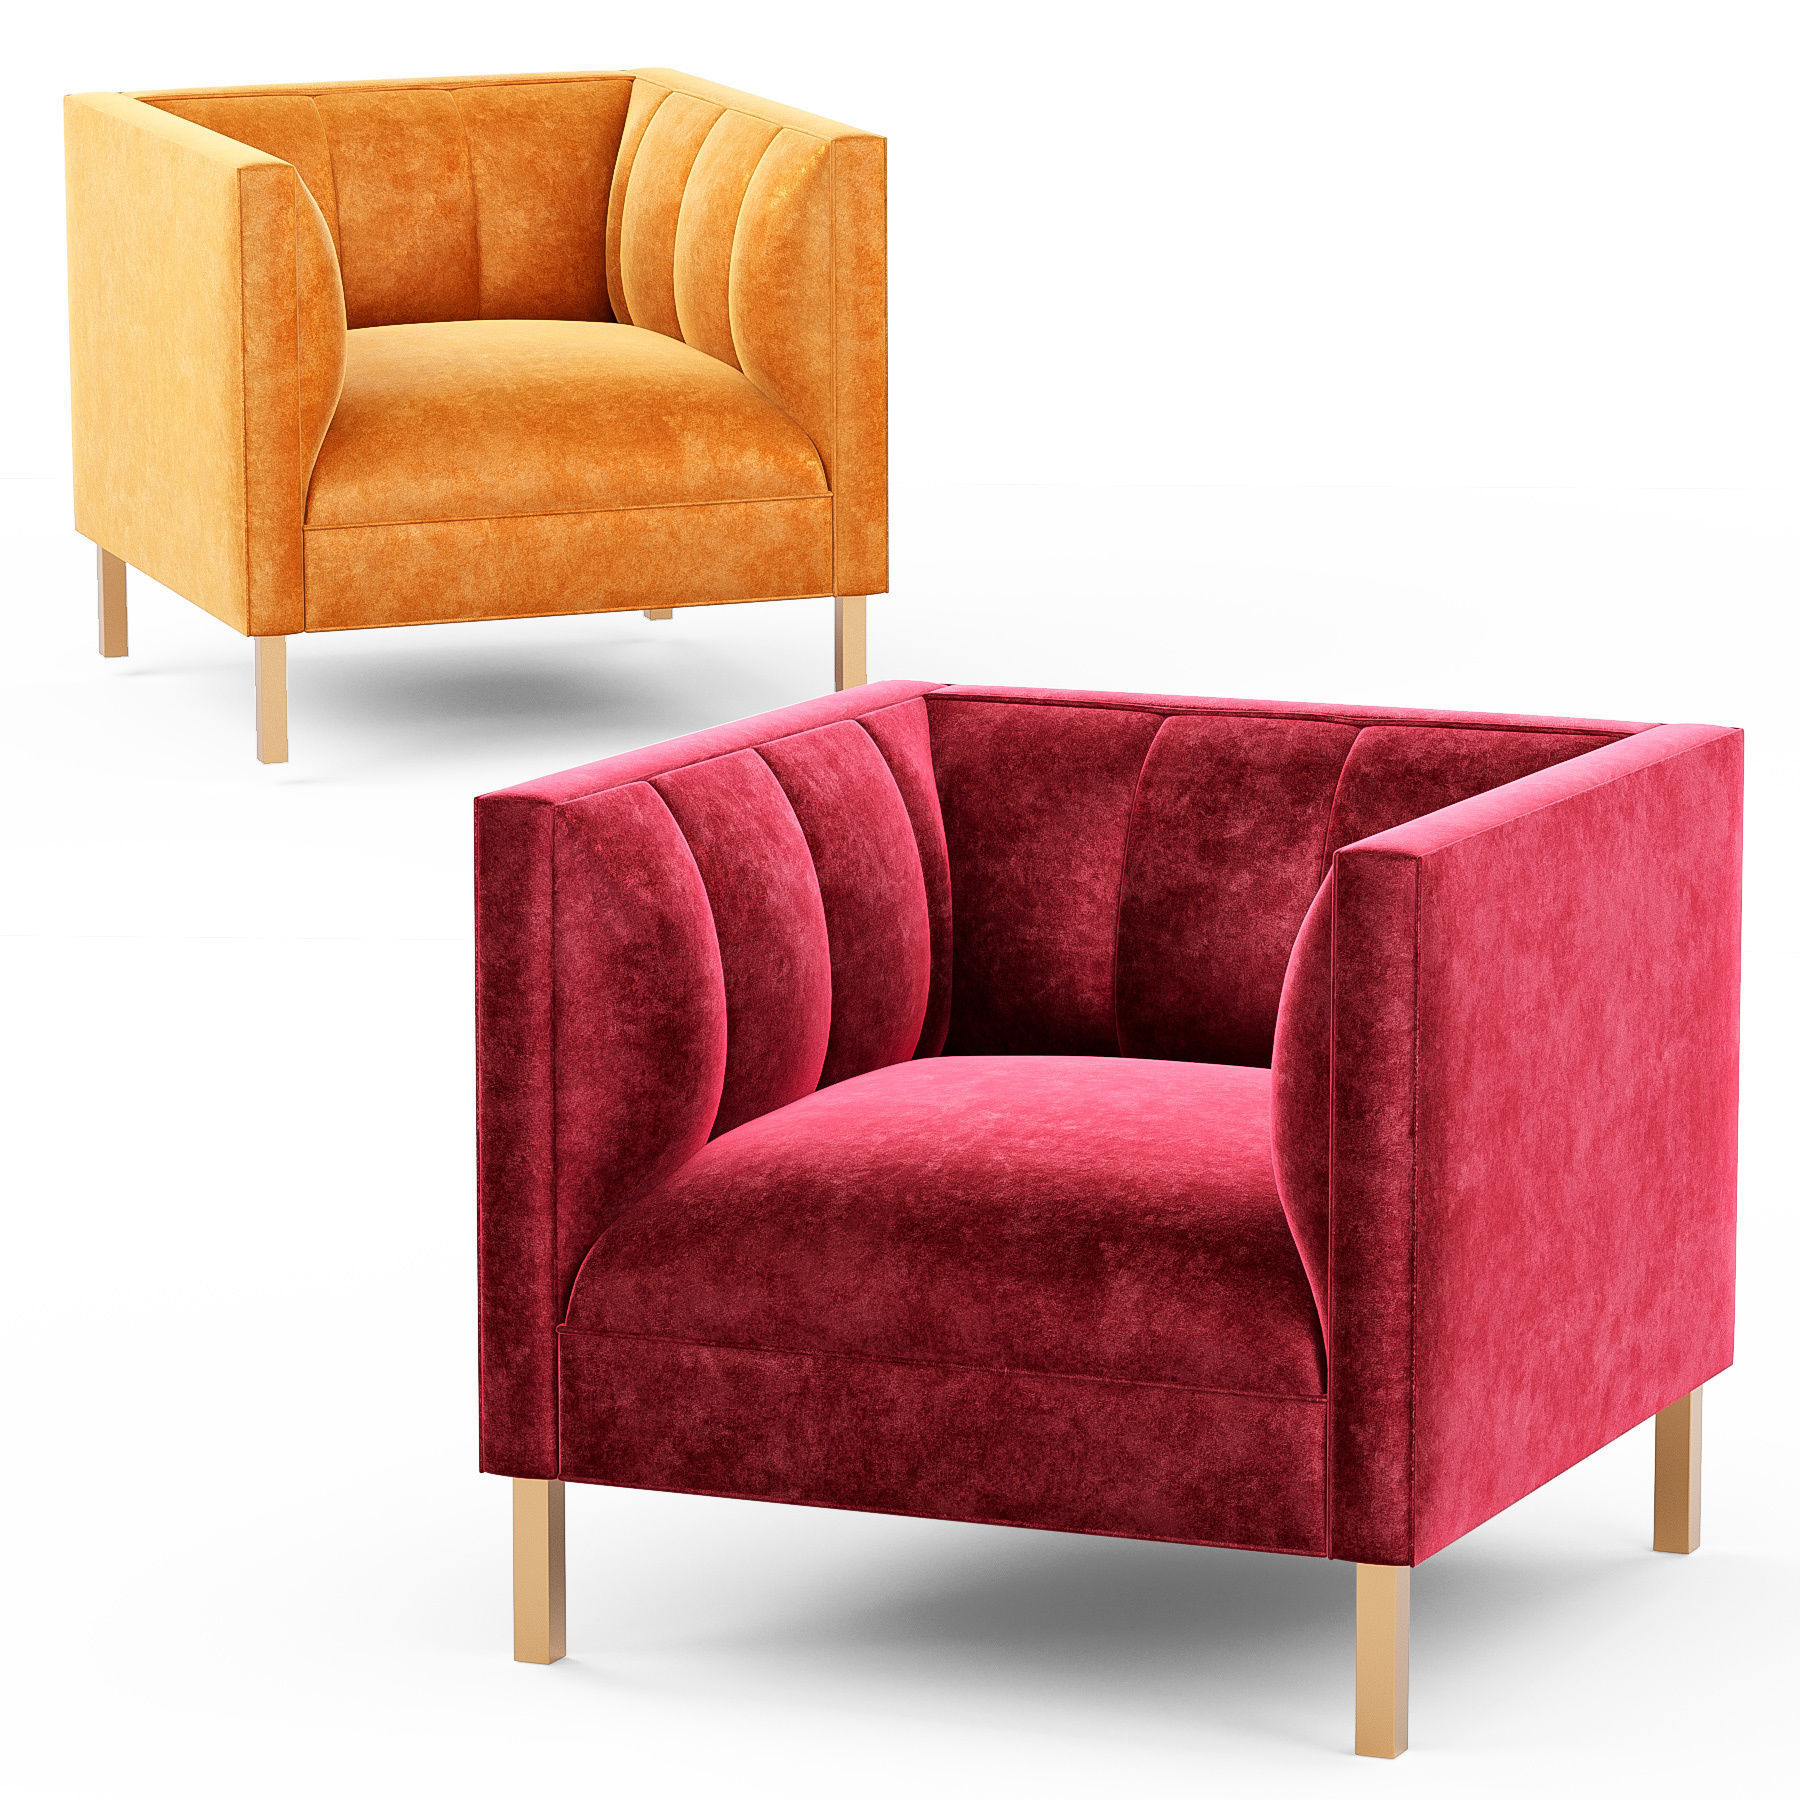 3d Model Crate And Barrel Chloe Chair Cgtrader